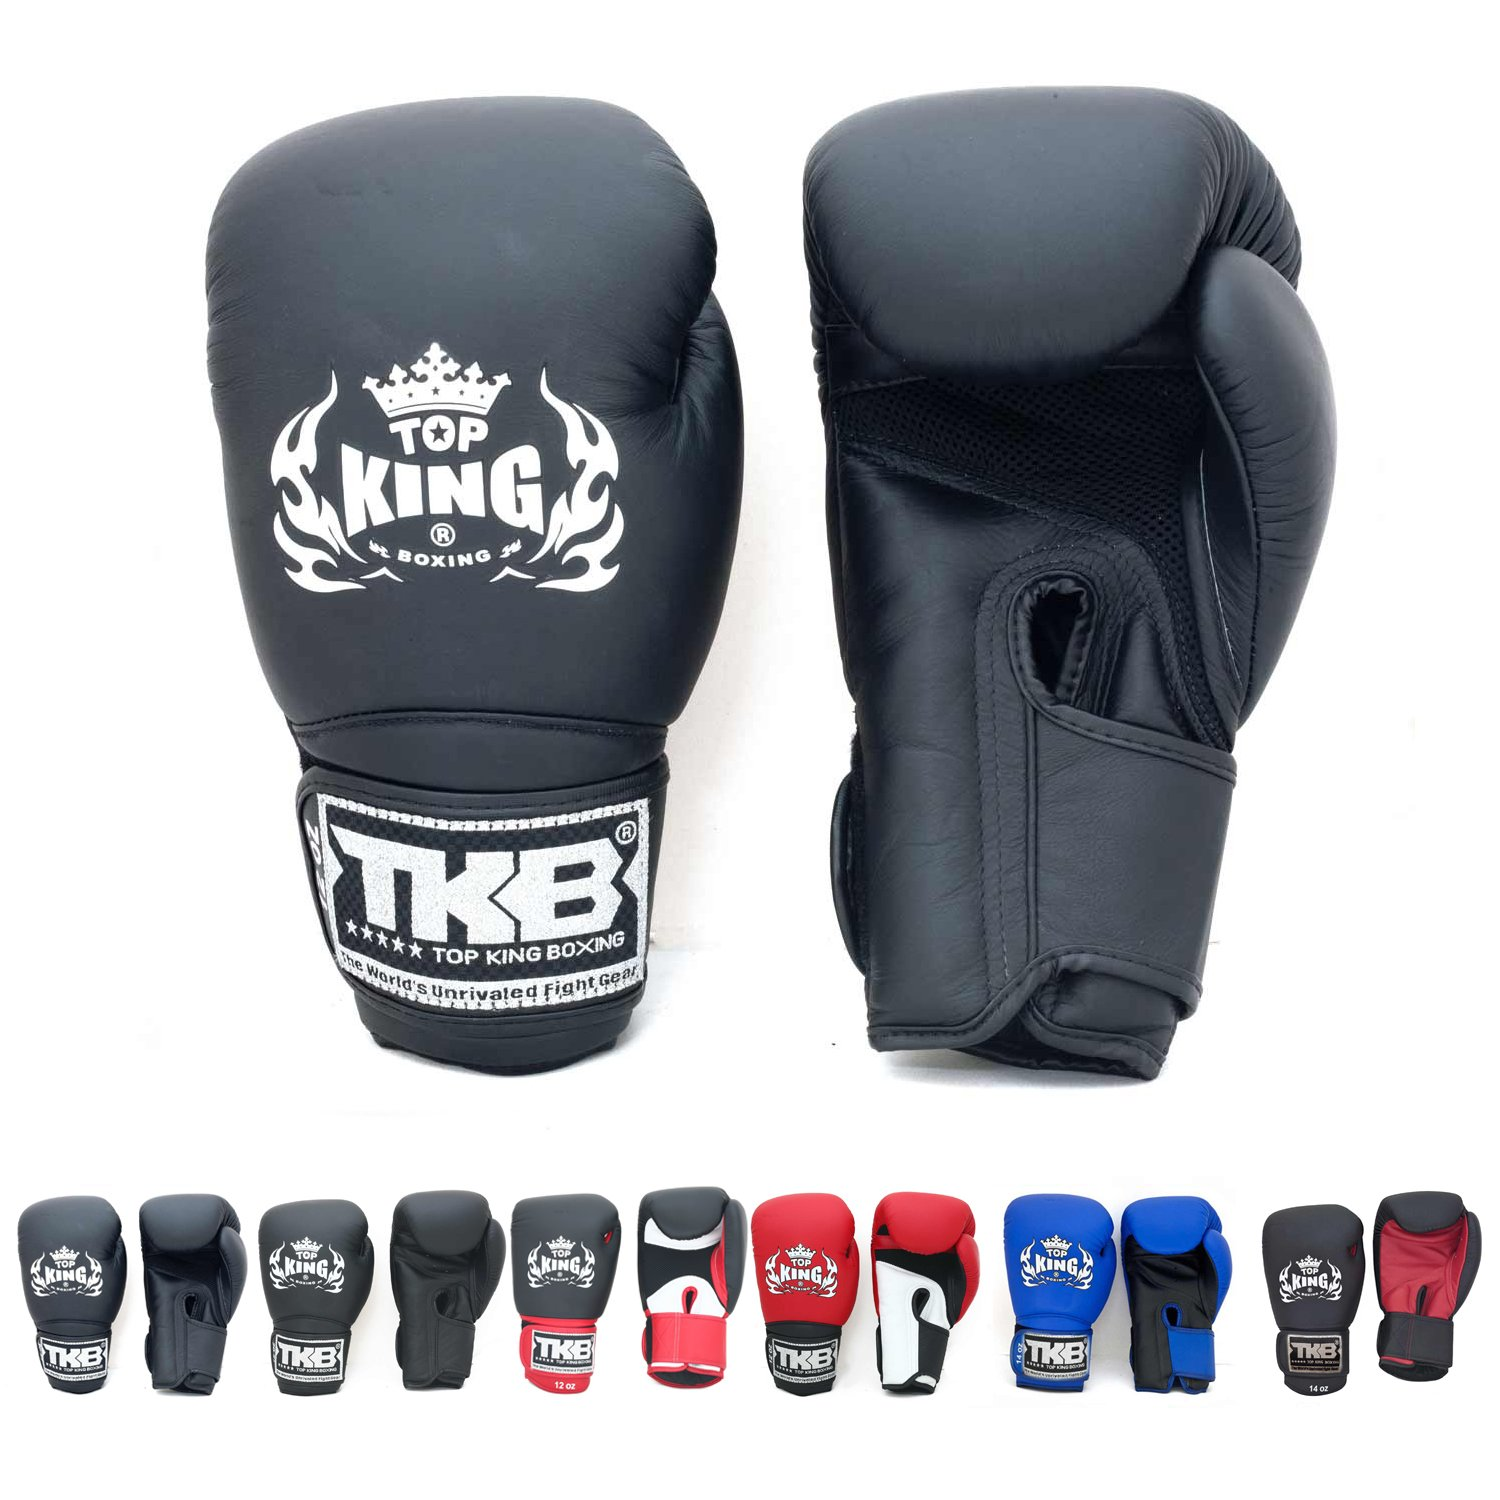 muay thai gloves size guide